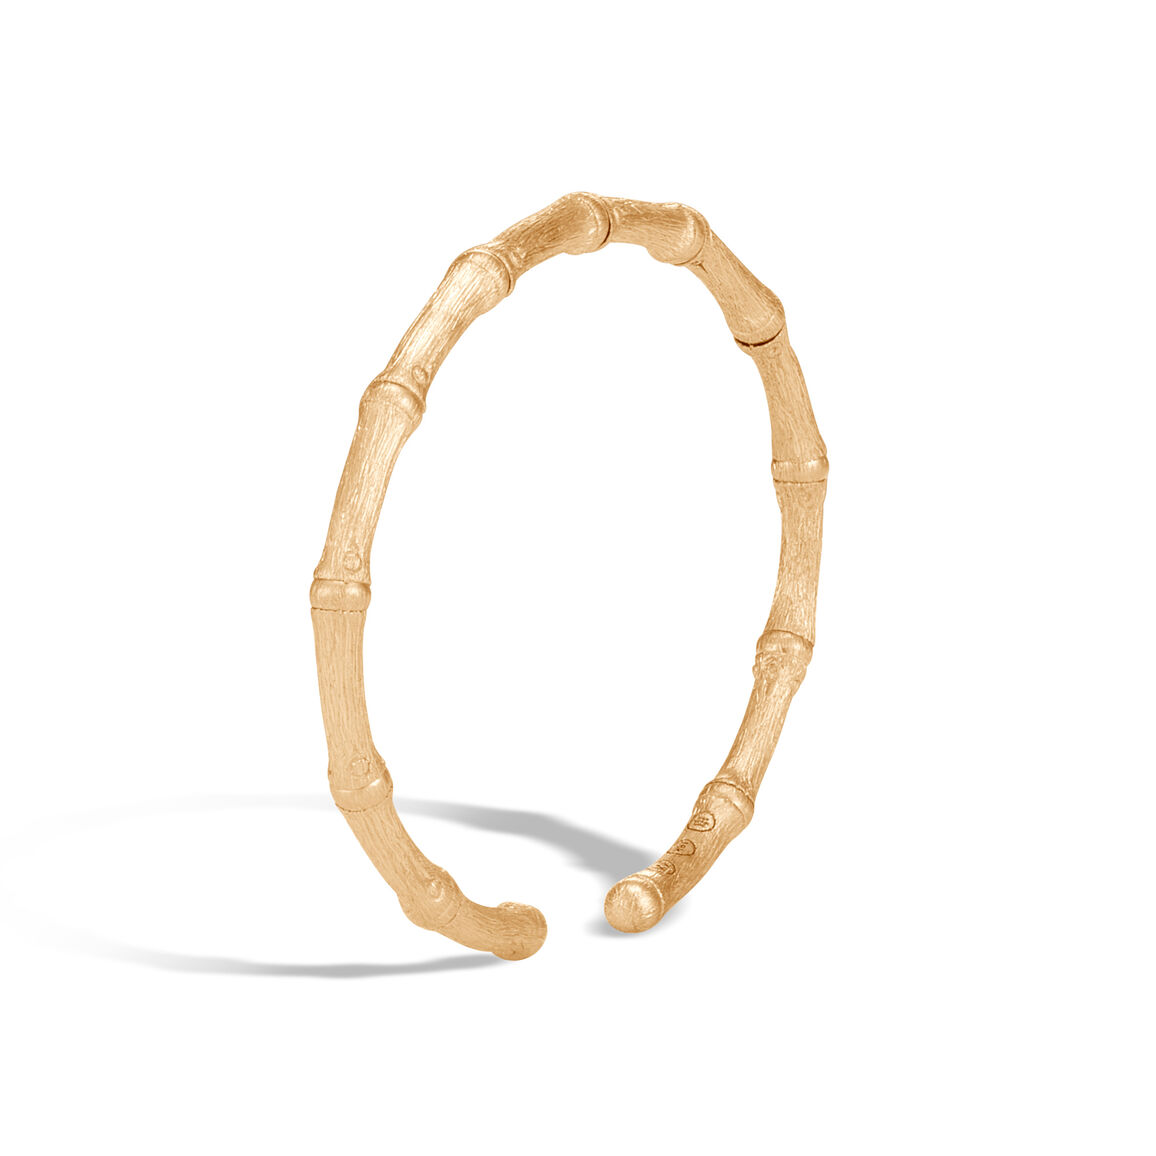 Bamboo 4MM Cuff in Brushed 18K Gold